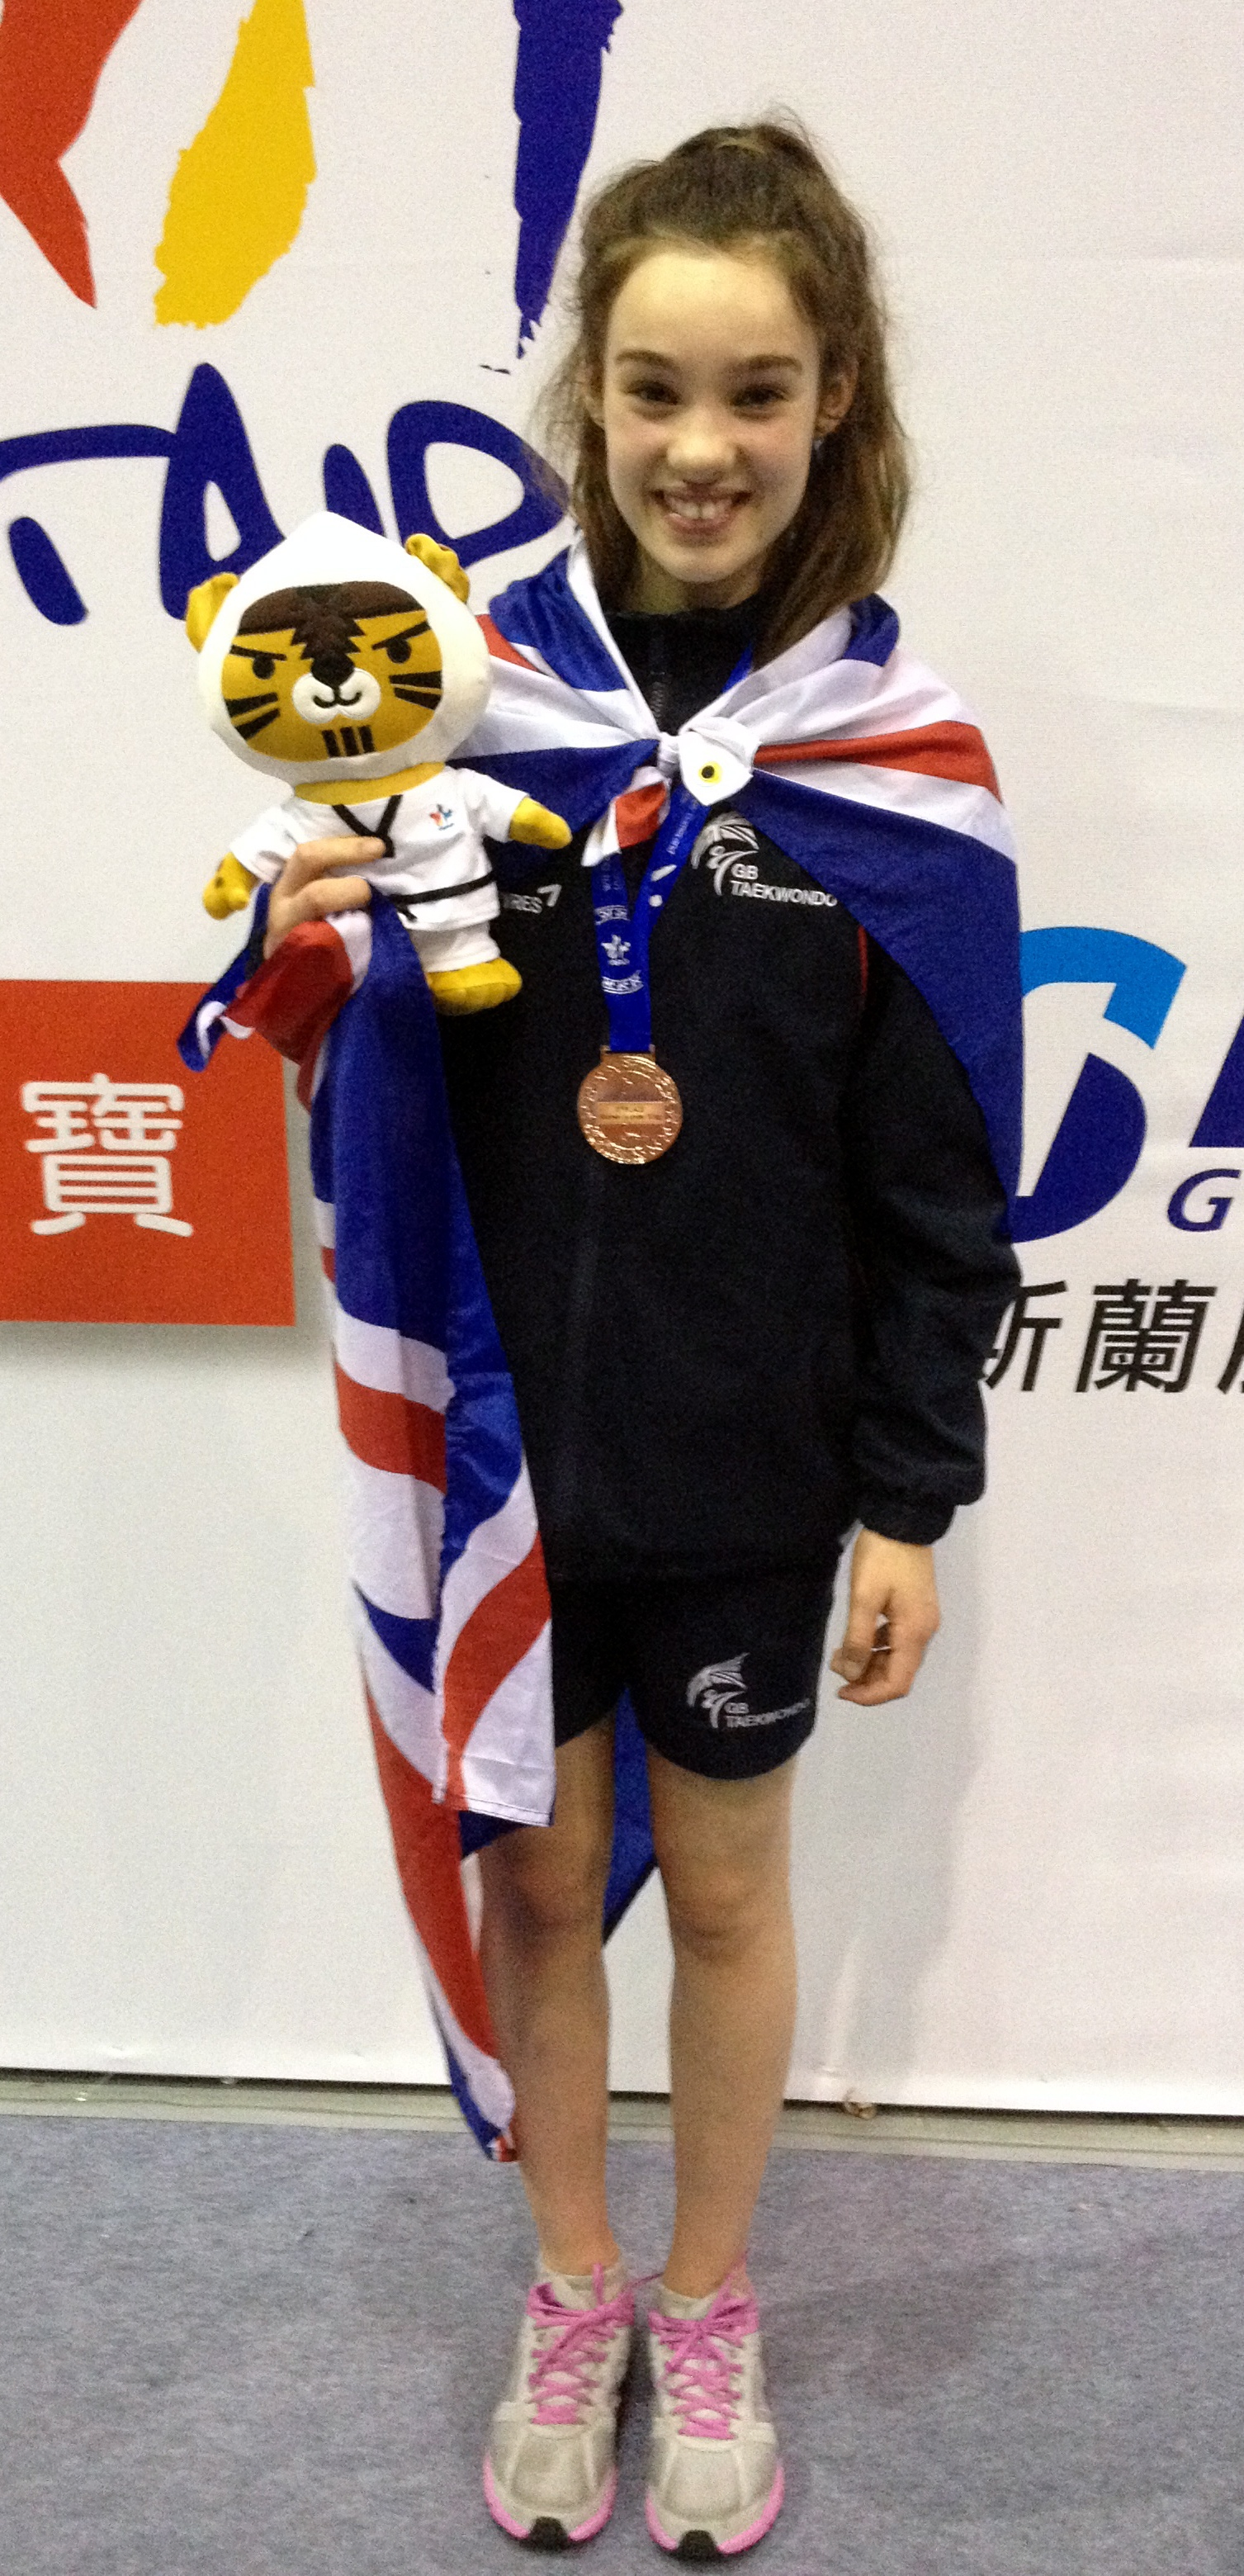 Age no limit as Keighley's Leah wins world bronze